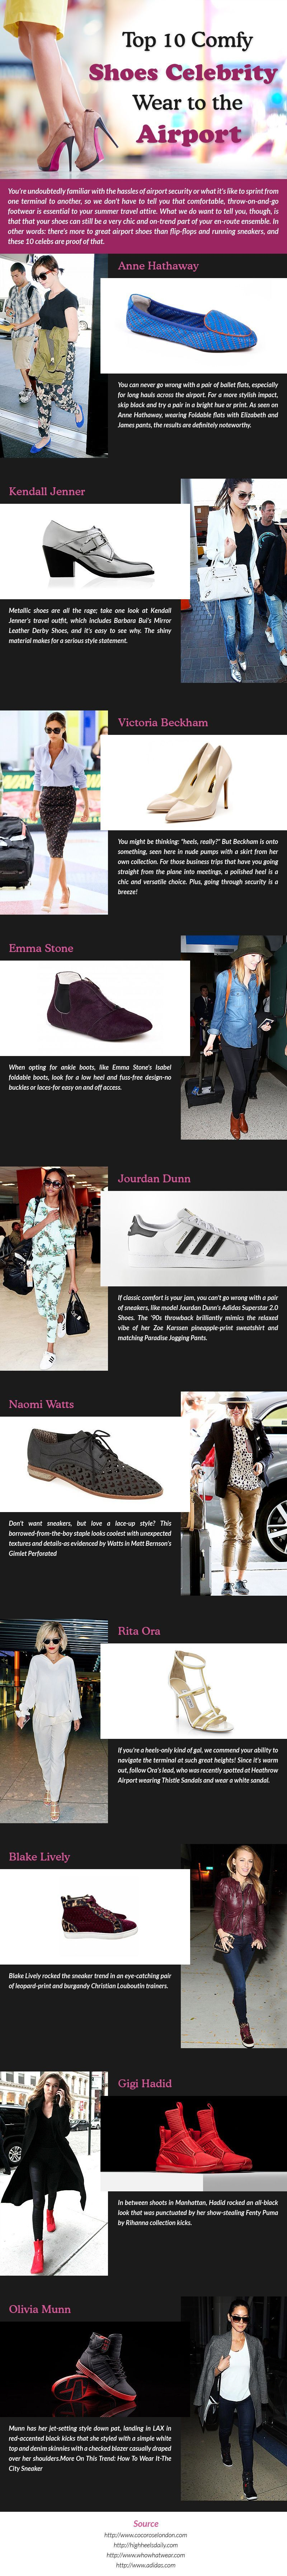 Top 10 Comfy Shoes Celebrity Wear to the Airport #Infographic